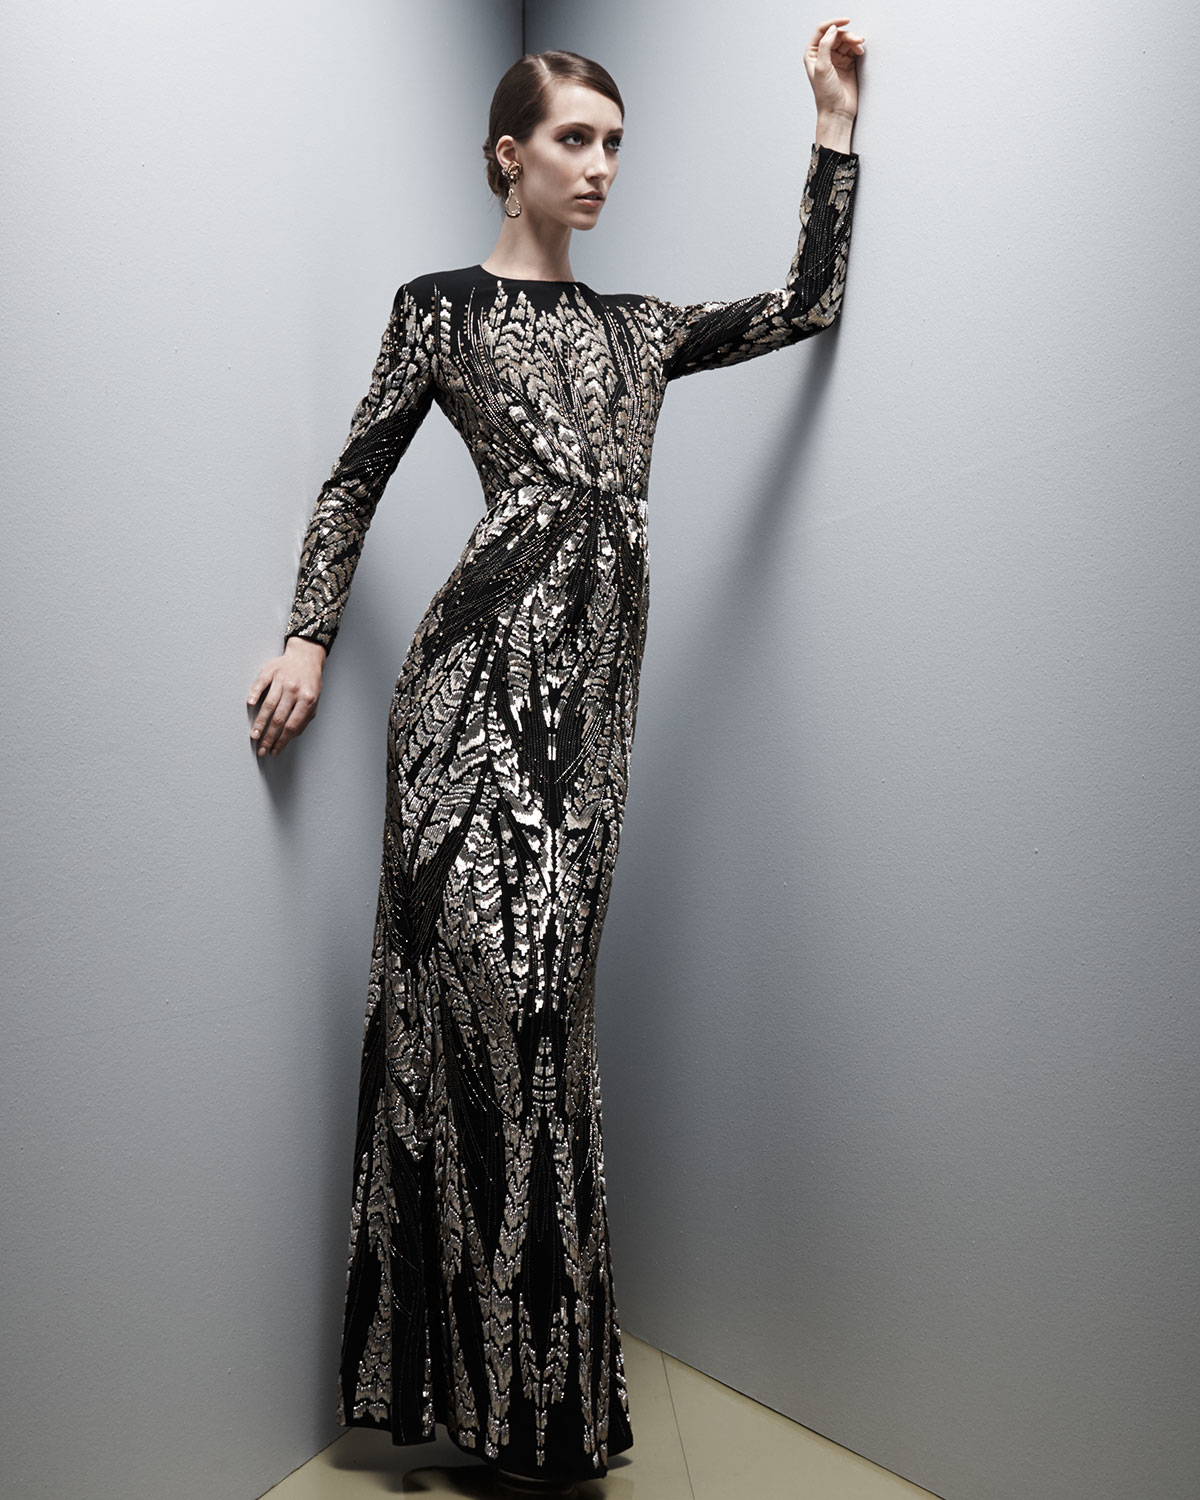 Lyst - Jenny Packham Long-sleeve Bead-embroidered Gown in Black